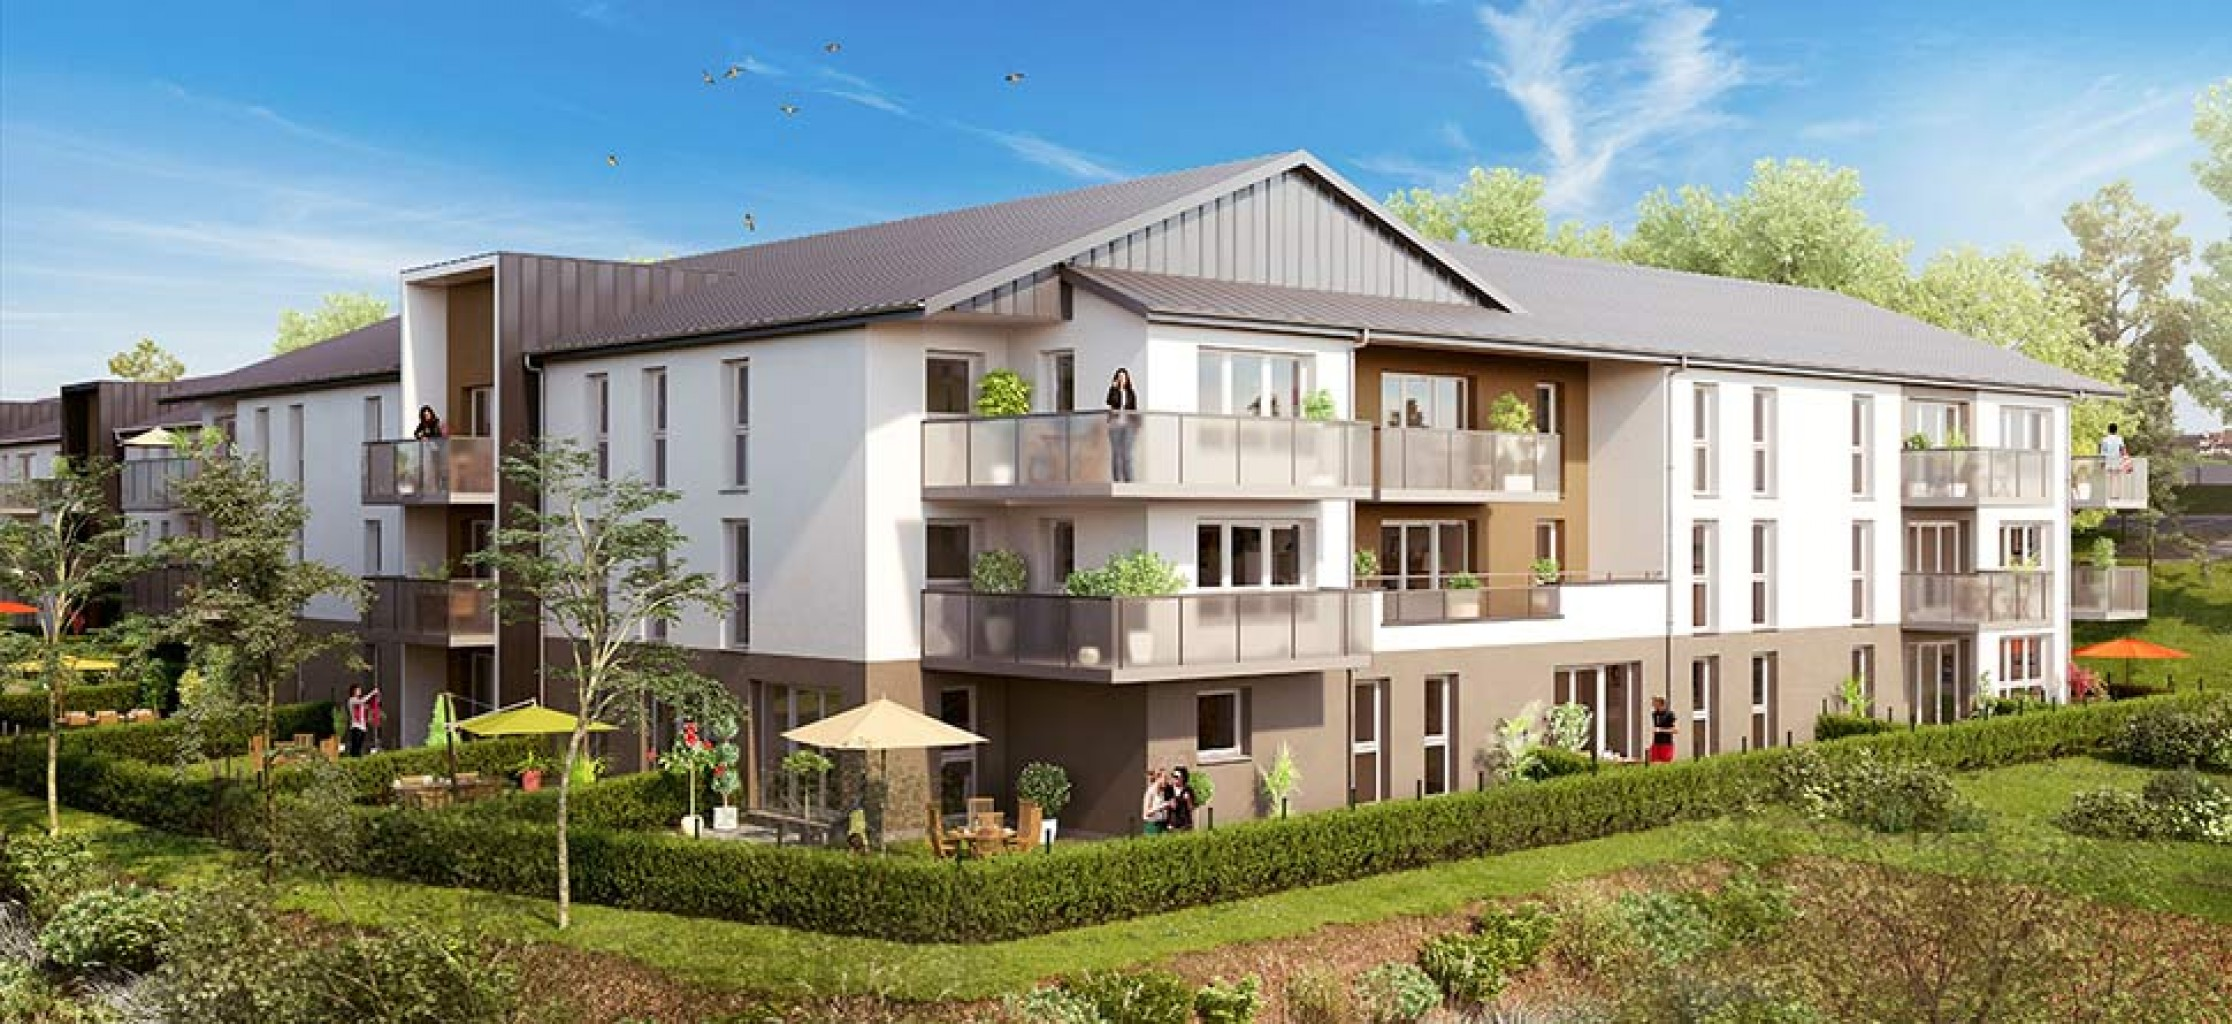 Plus immo programmes immobiliers houlme haute normandie for Immobilier du neuf